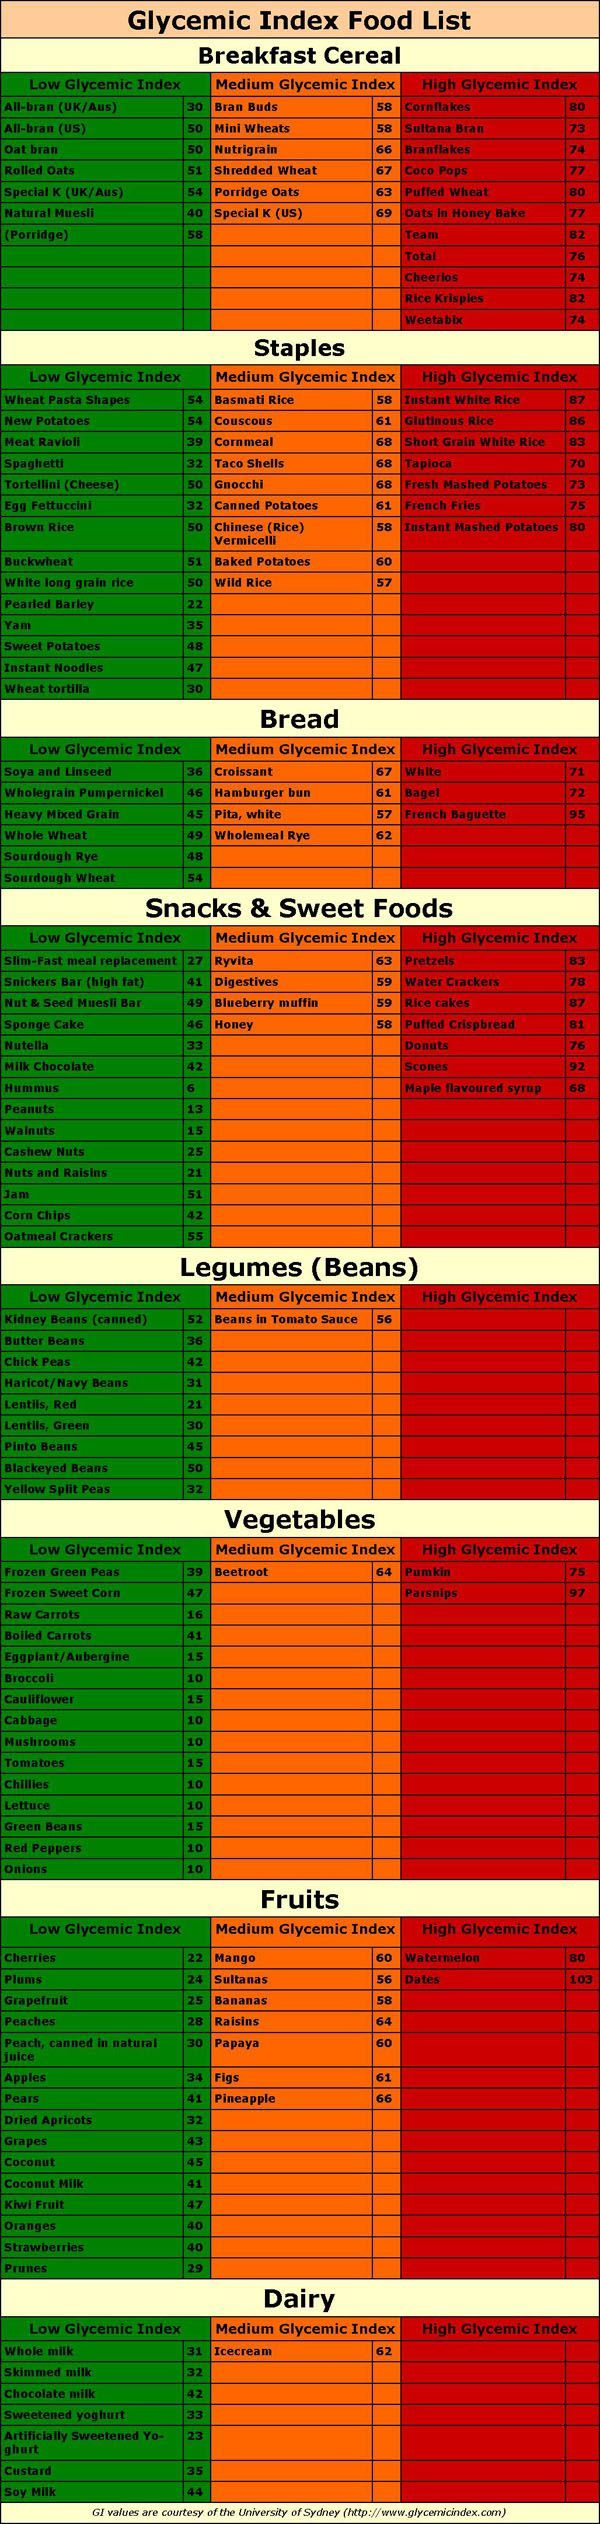 "Good blood sugar levels ""A Long Glycemic Index Food List to Keep Your Blood Sugar Levels Balanced"""